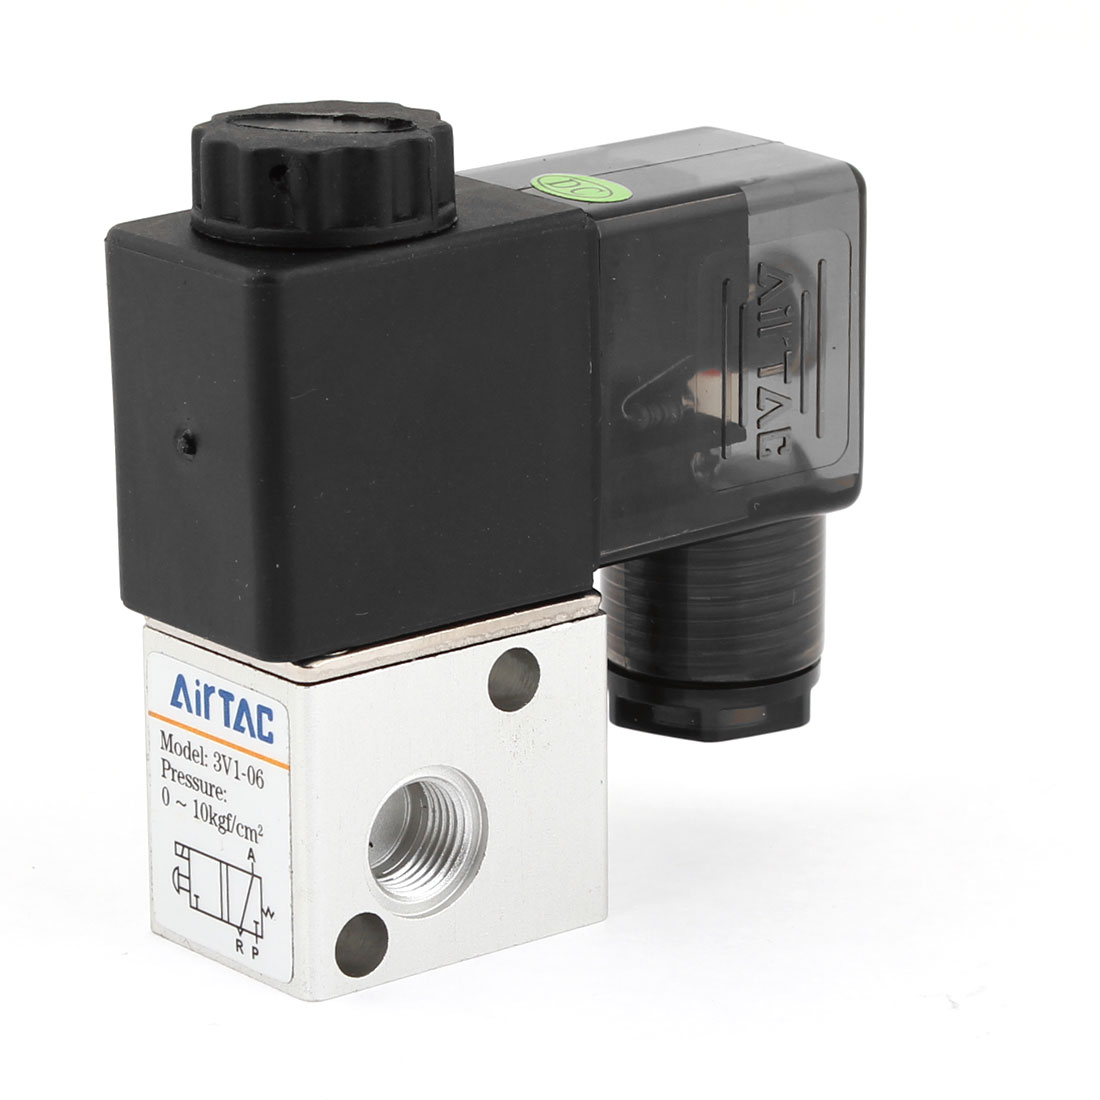 3V1-06 2 Position 3 Way Pneumatic Solenoid Valve DC 12V 4.8VA 400mA